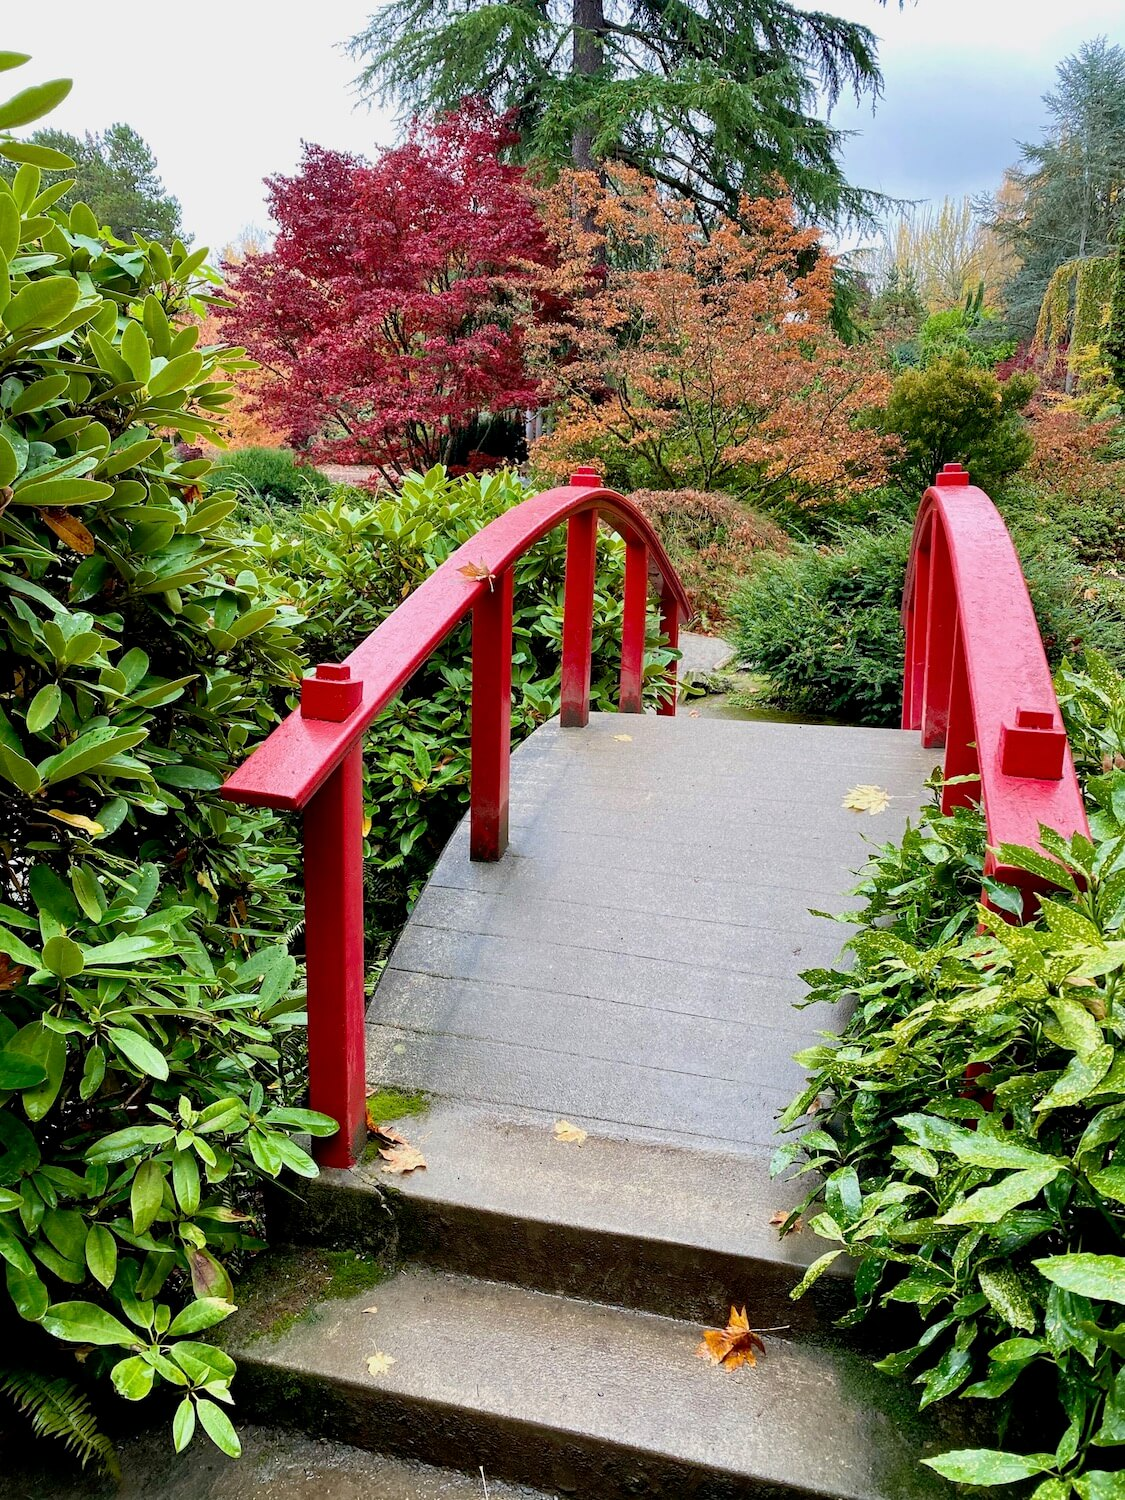 A moon bridge with bright red lacquered paint jumps over a creek at Kubota Gardens in Seattle.  The inspiring Japanese garden is famous for the colors of all the various maples trees, like the ones in this shot with red and orange leaves.  The bridge itself is surrounded by lush green rhododendron leaves.